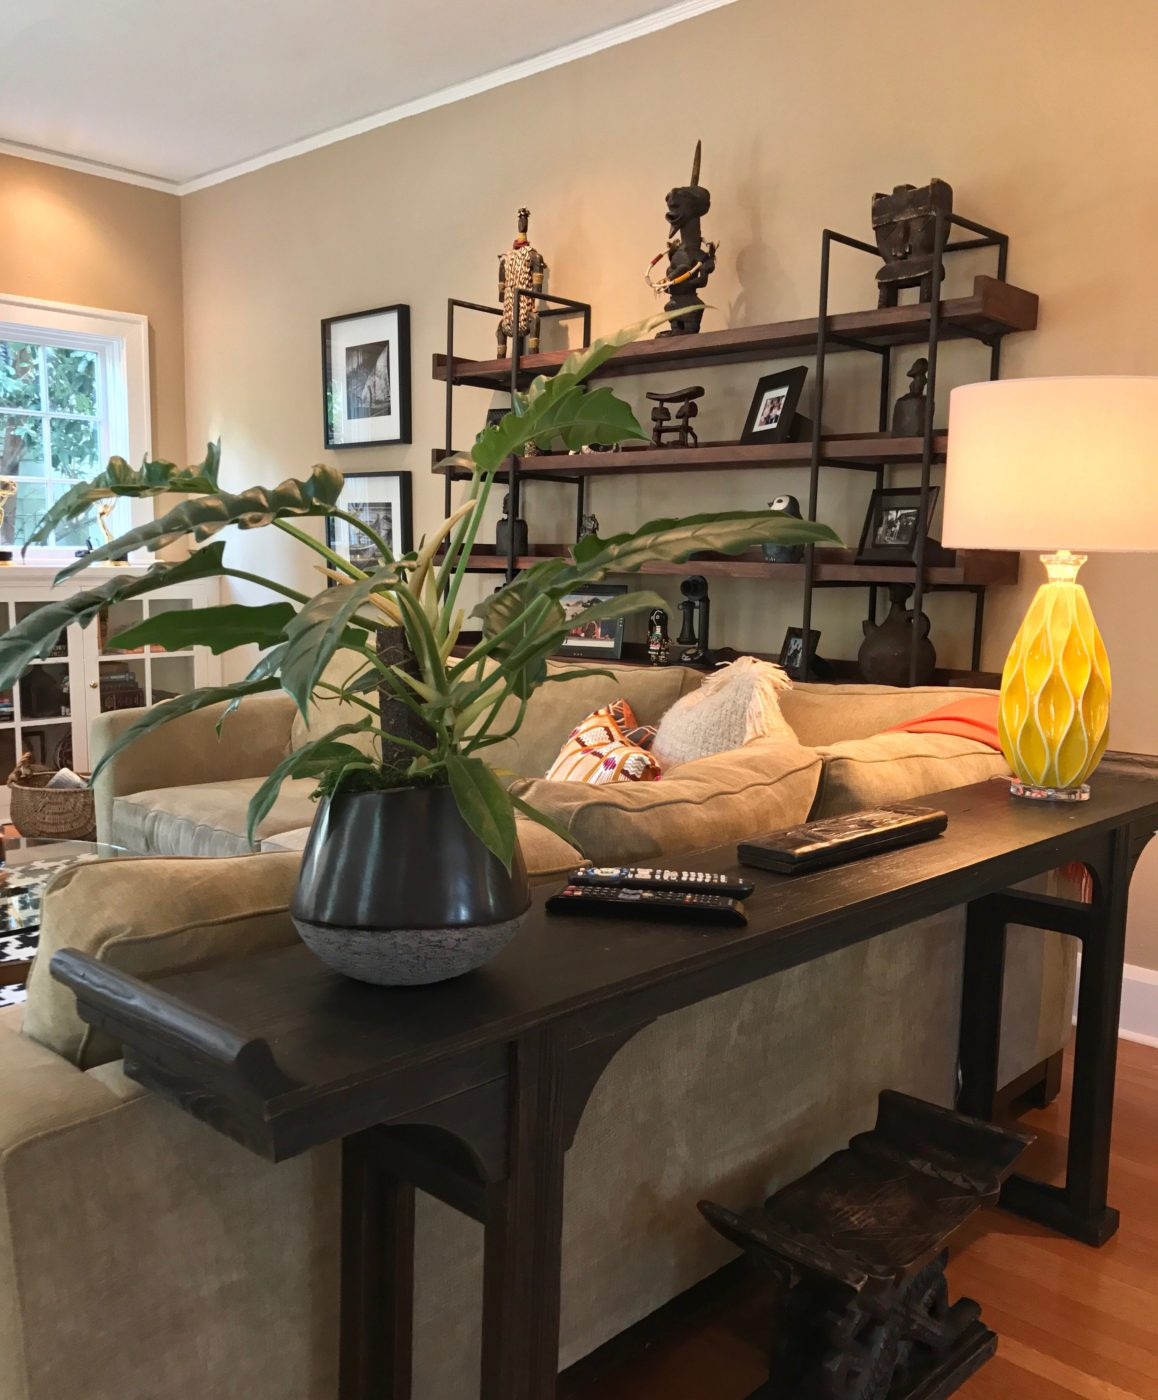 Picture is showing the back of the sofa with a console table with a yellow mid-century modern lamp and potted plant. Over the top of the sofa you can see the new display shelves showcasing the homeowners African art collection.